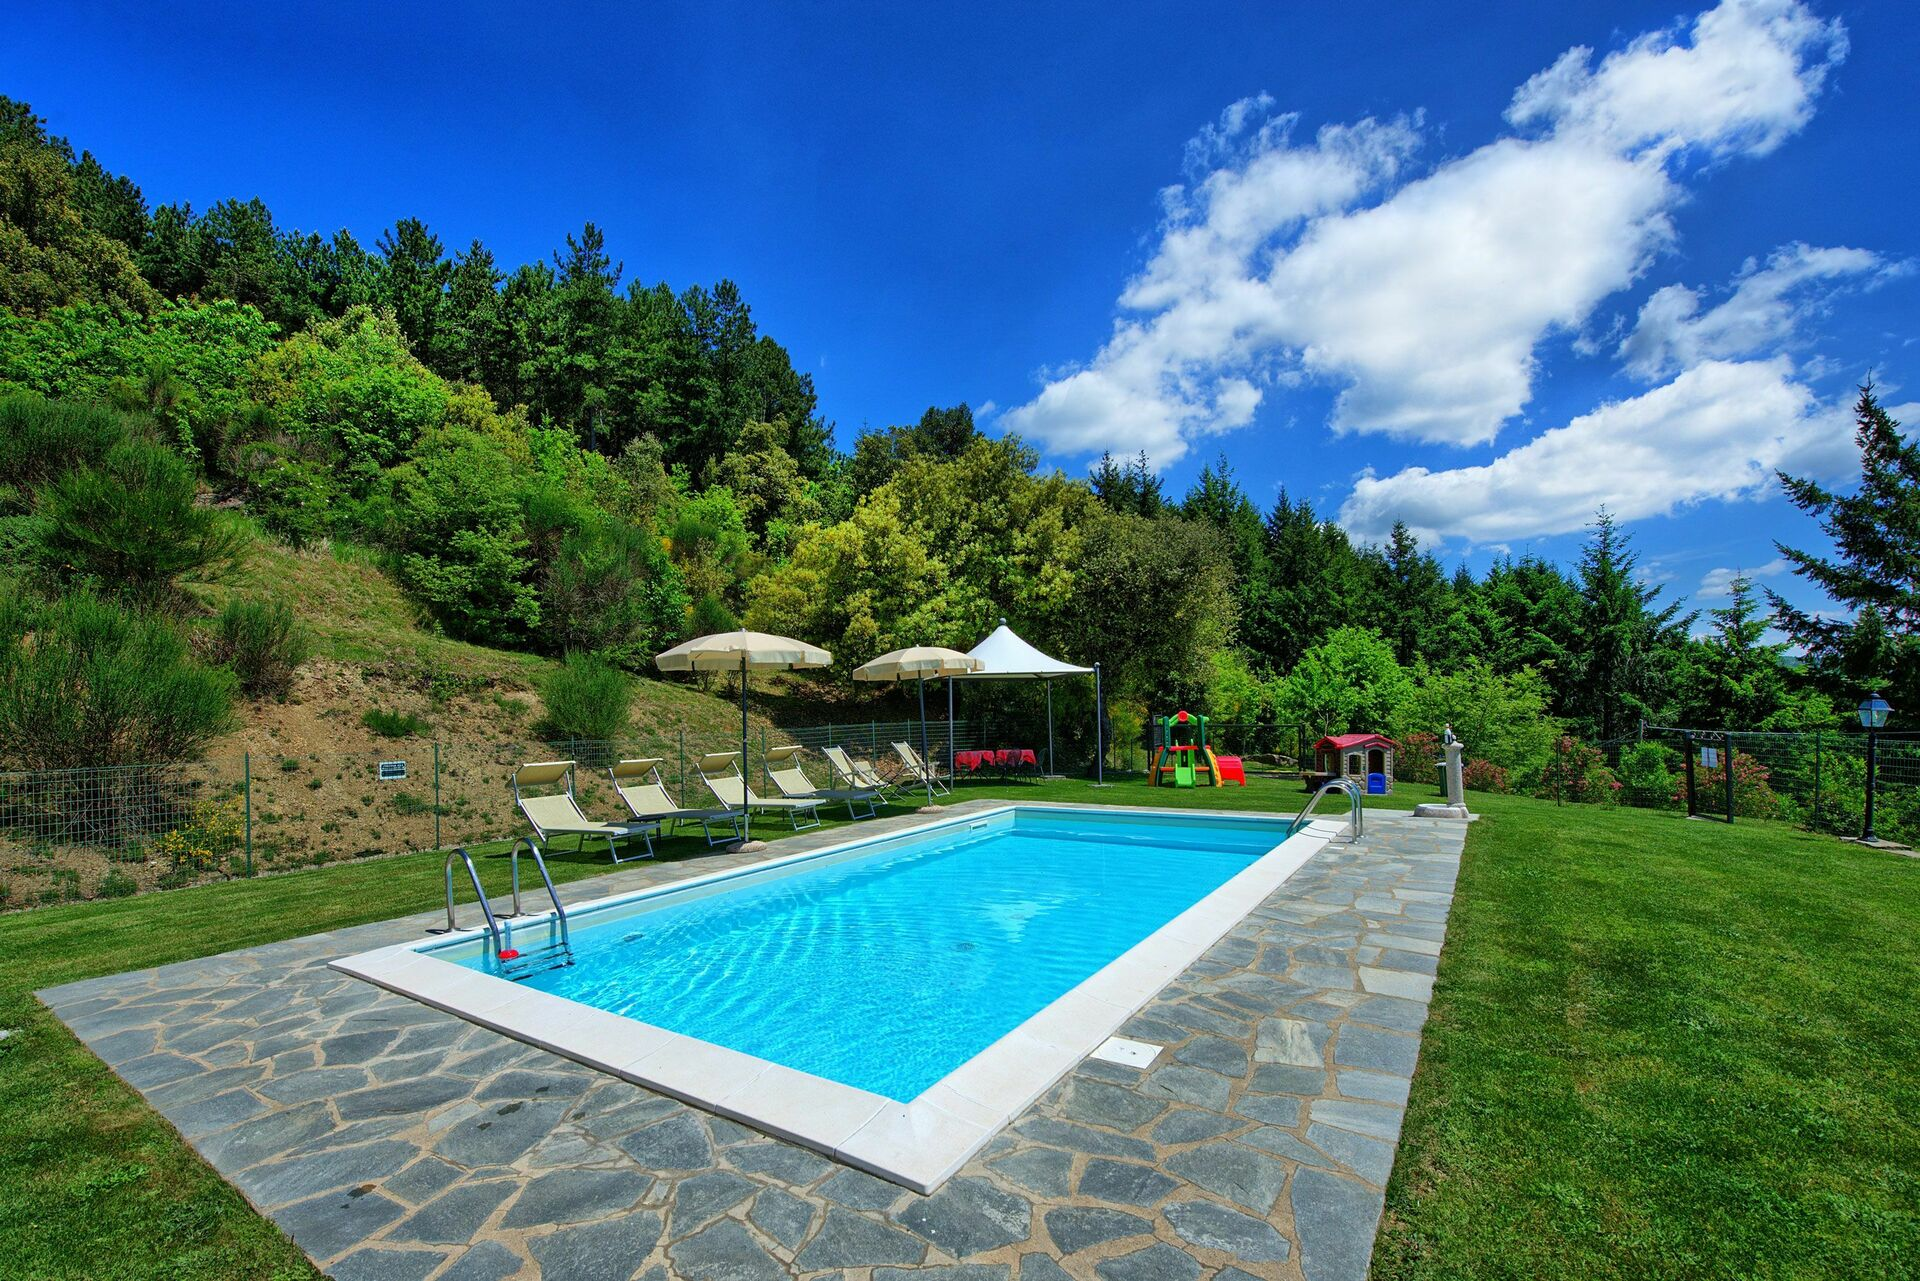 Cash Pool Mannheim Villa Portole Due Country Villa Rental In Cortona Arezzo